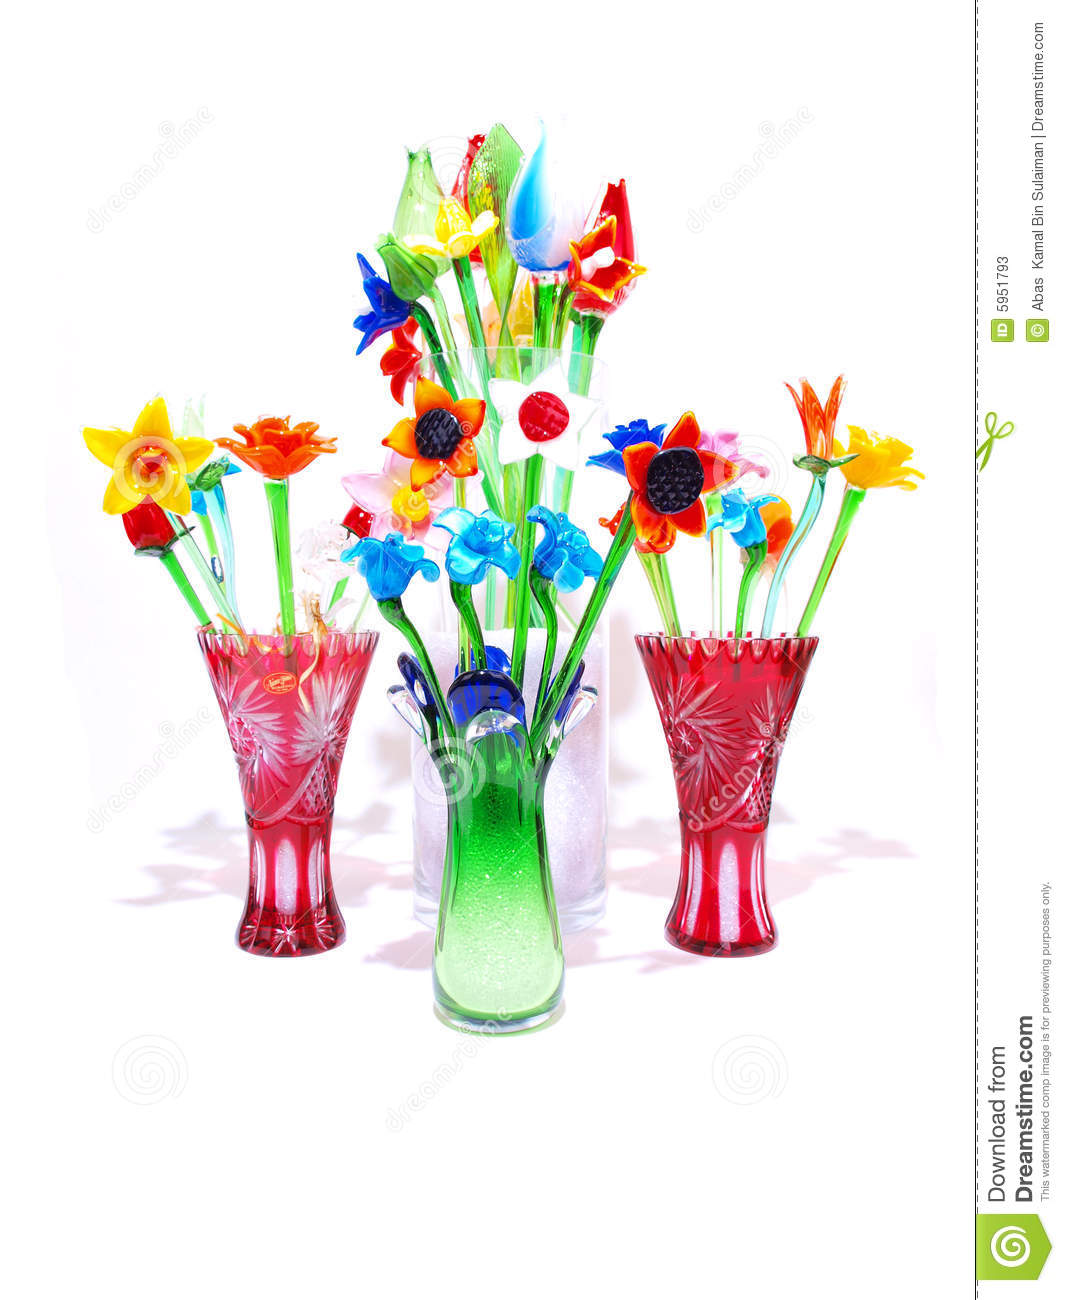 vases vector flowers vase and pattern image seamless free bottles royalty